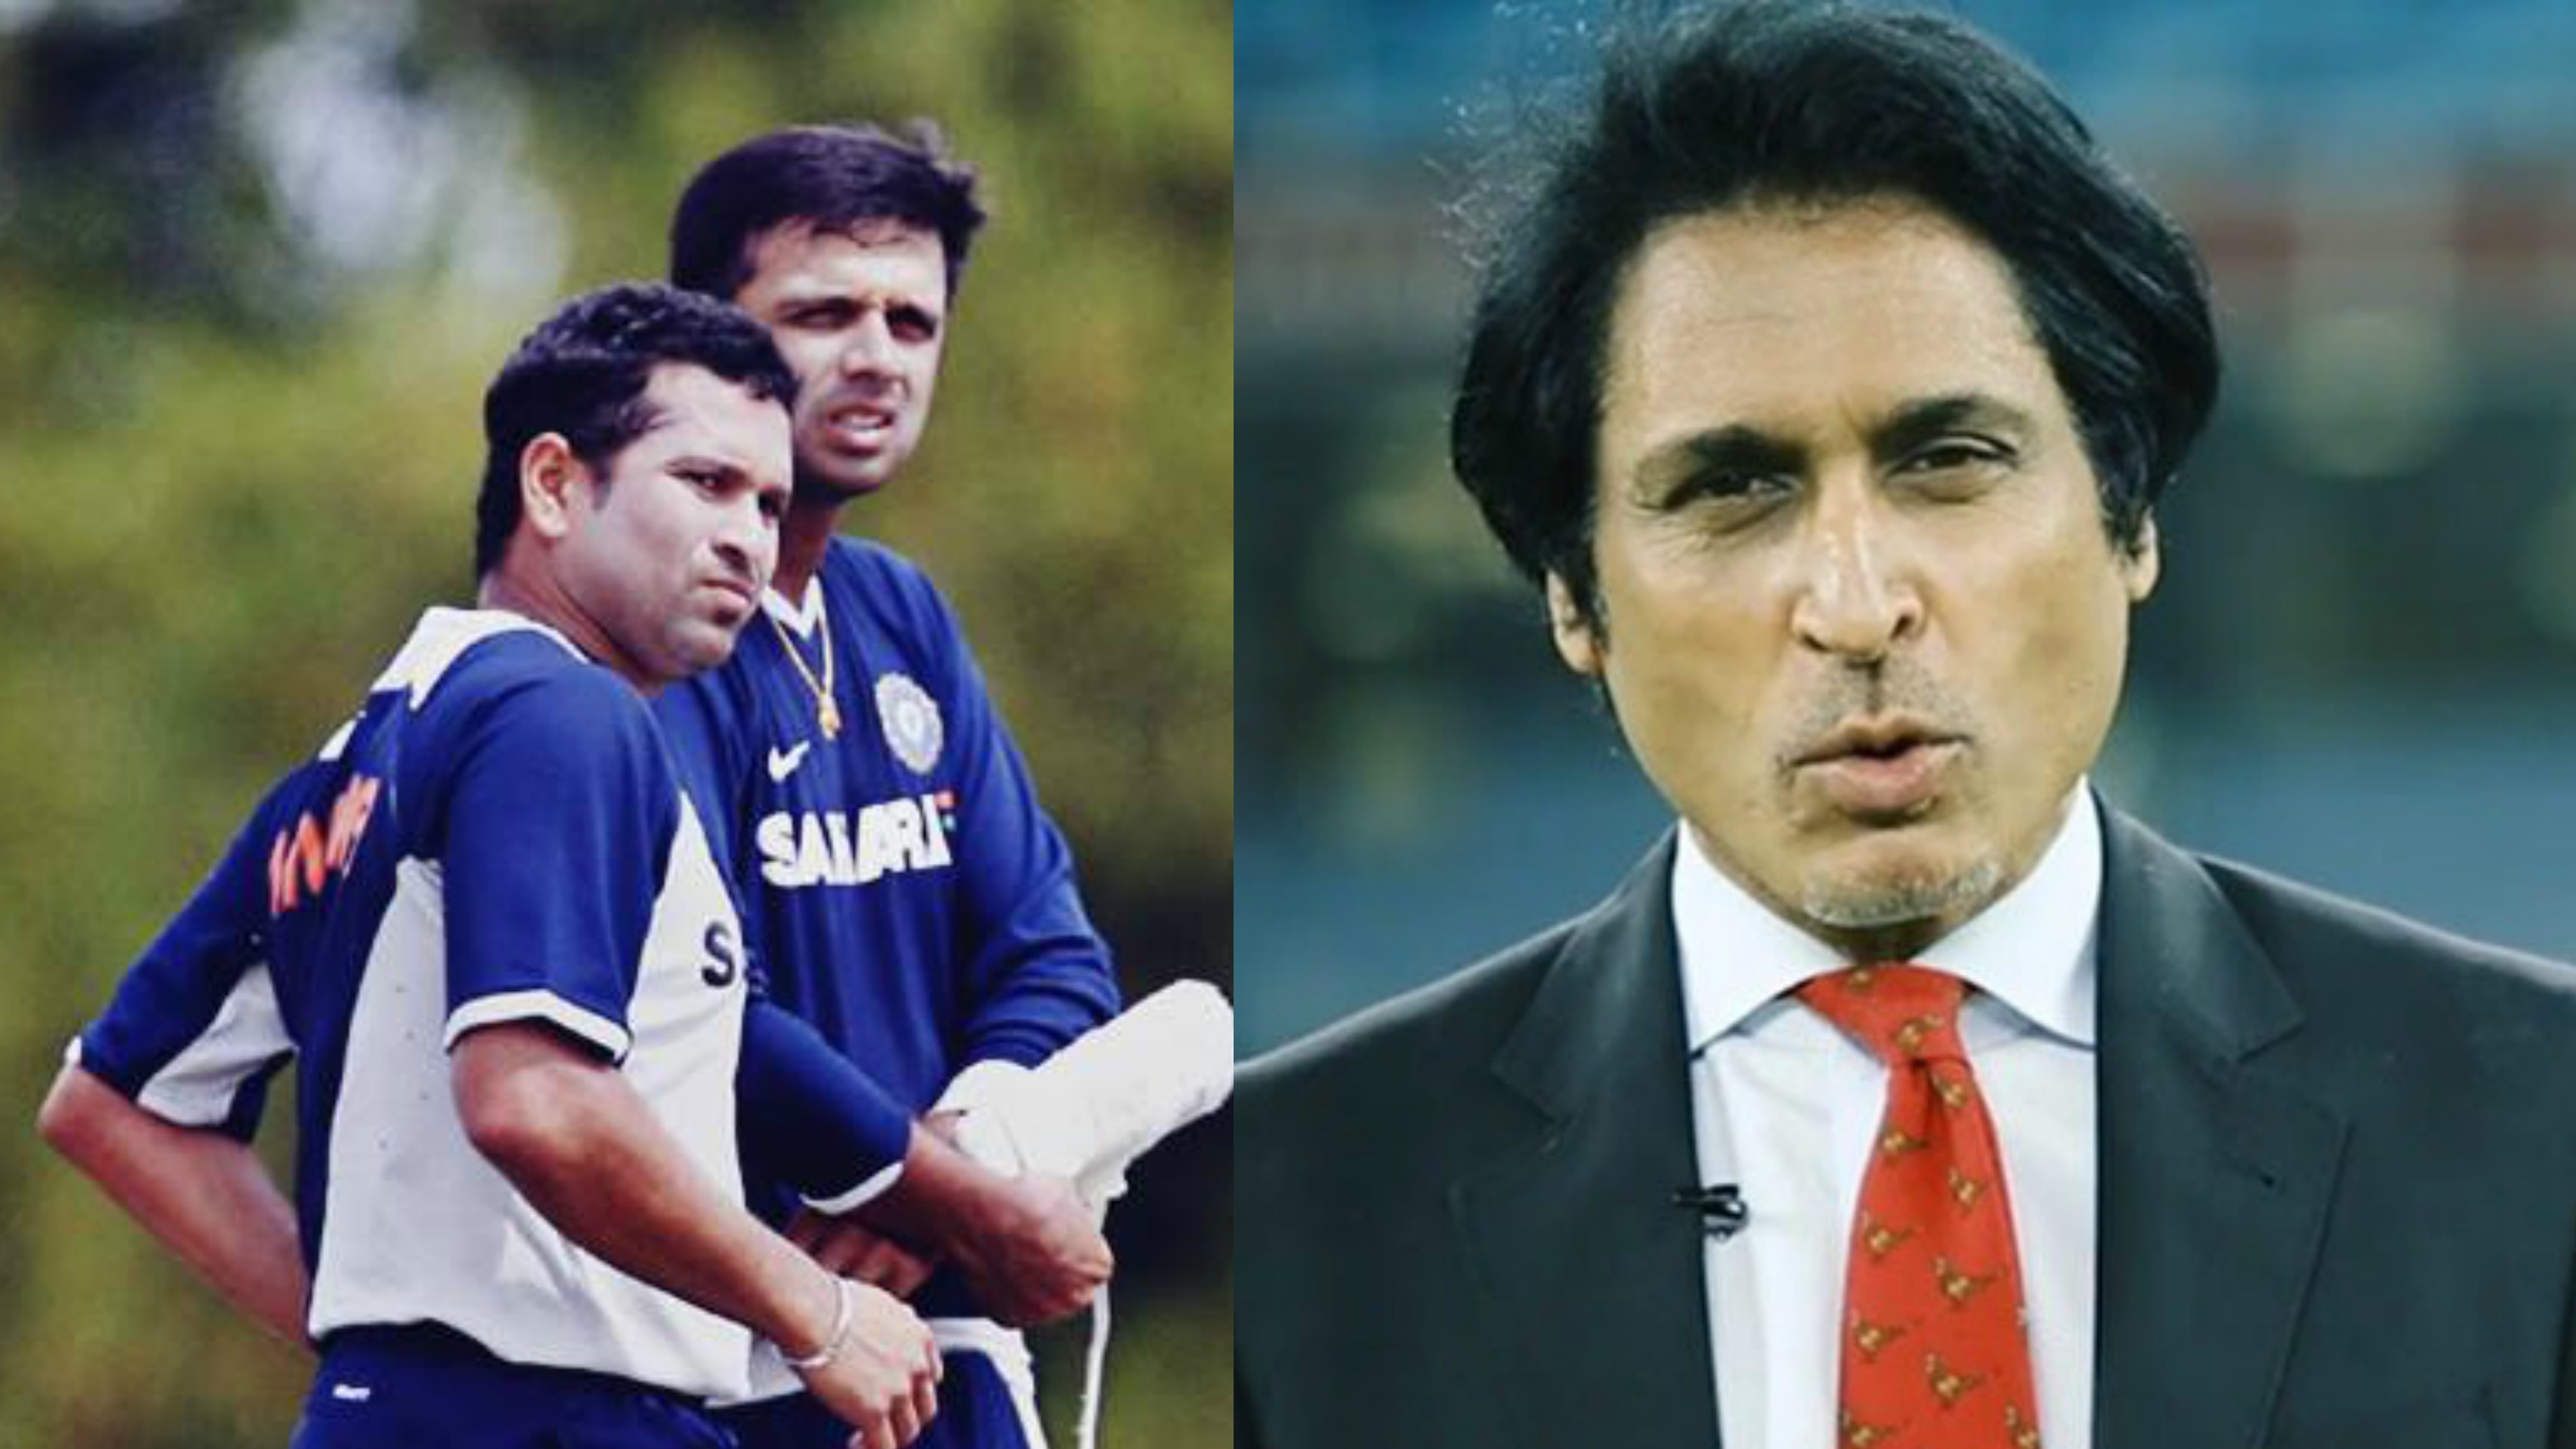 Credit to Rahul Dravid, for at times outdoing even Sachin Tendulkar, says Ramiz Raja